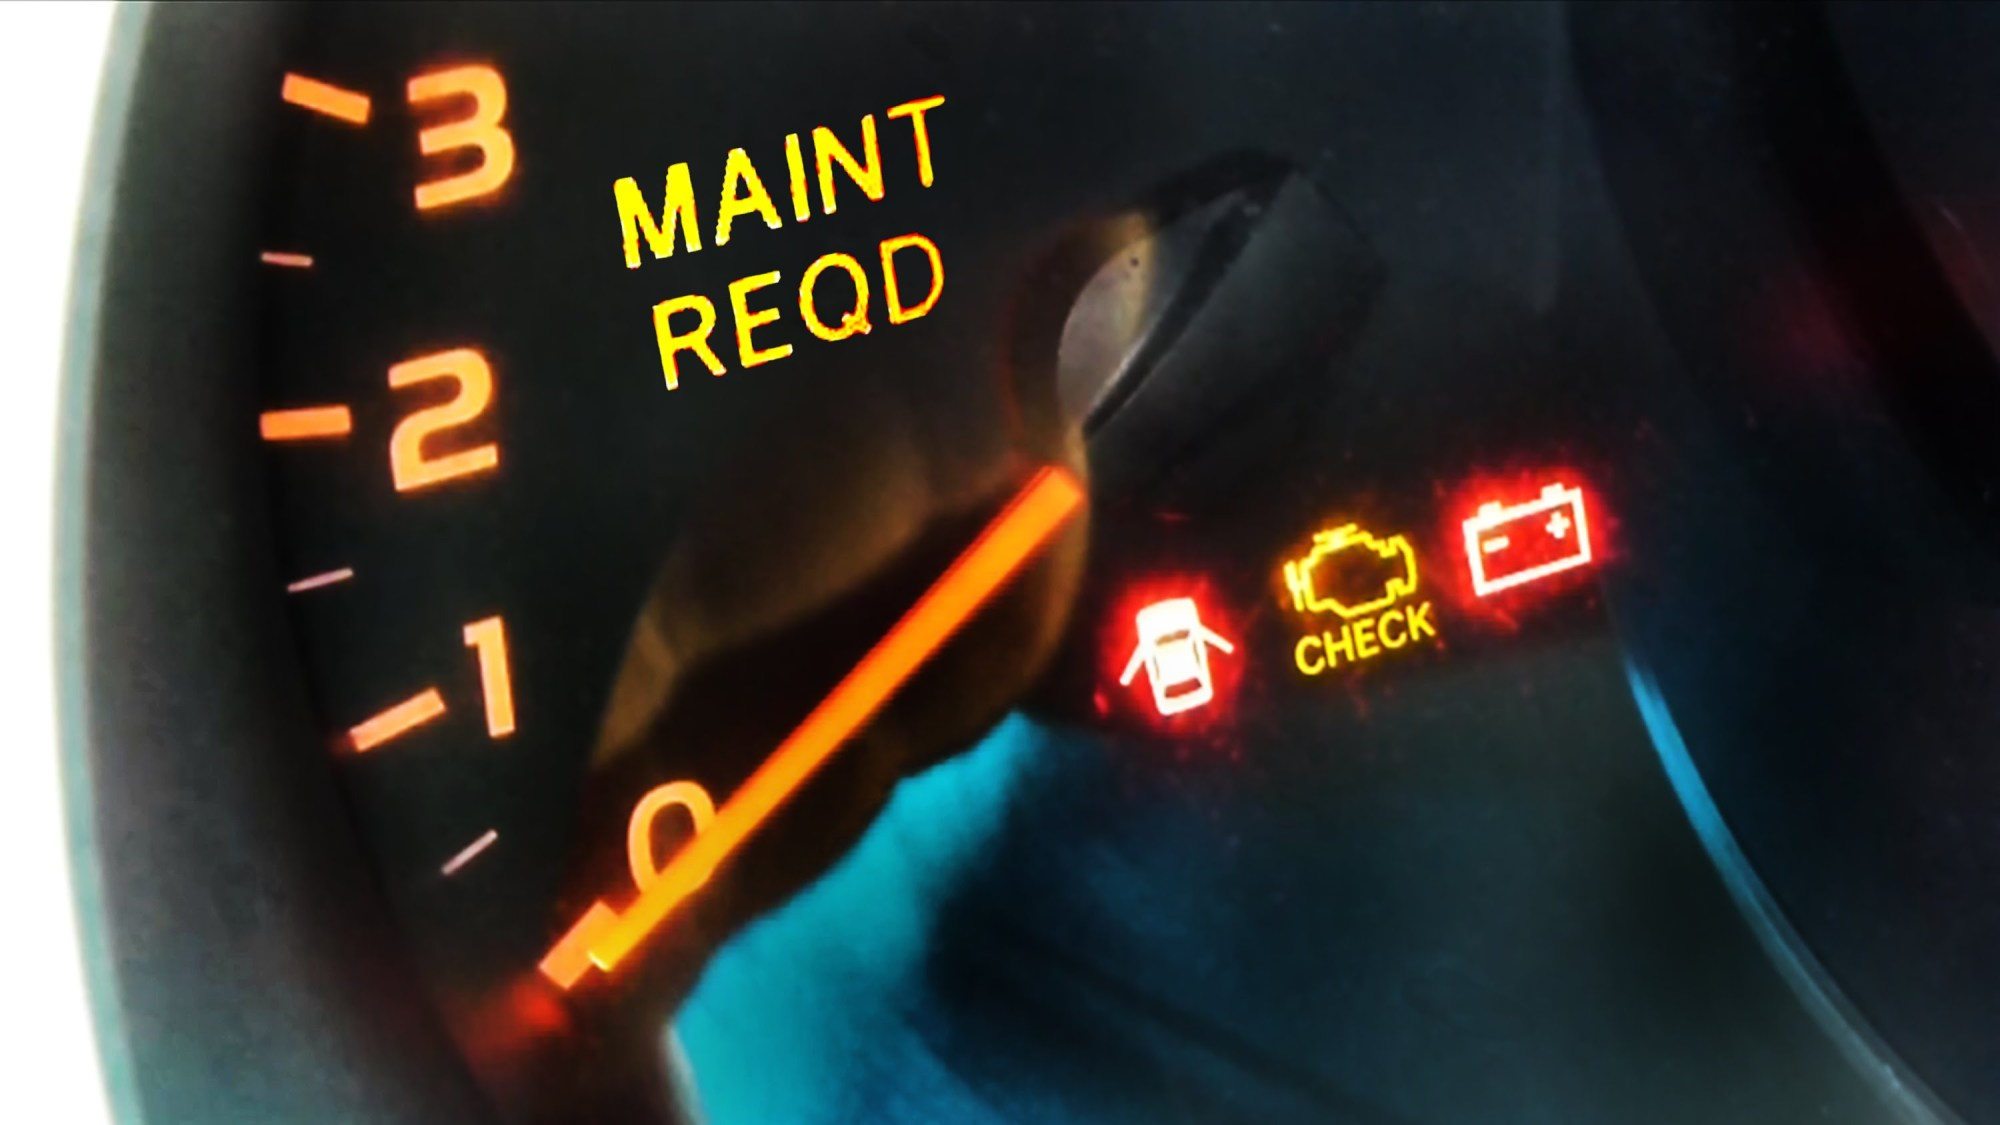 hight resolution of image of lexus dashboard showing maintenance required light